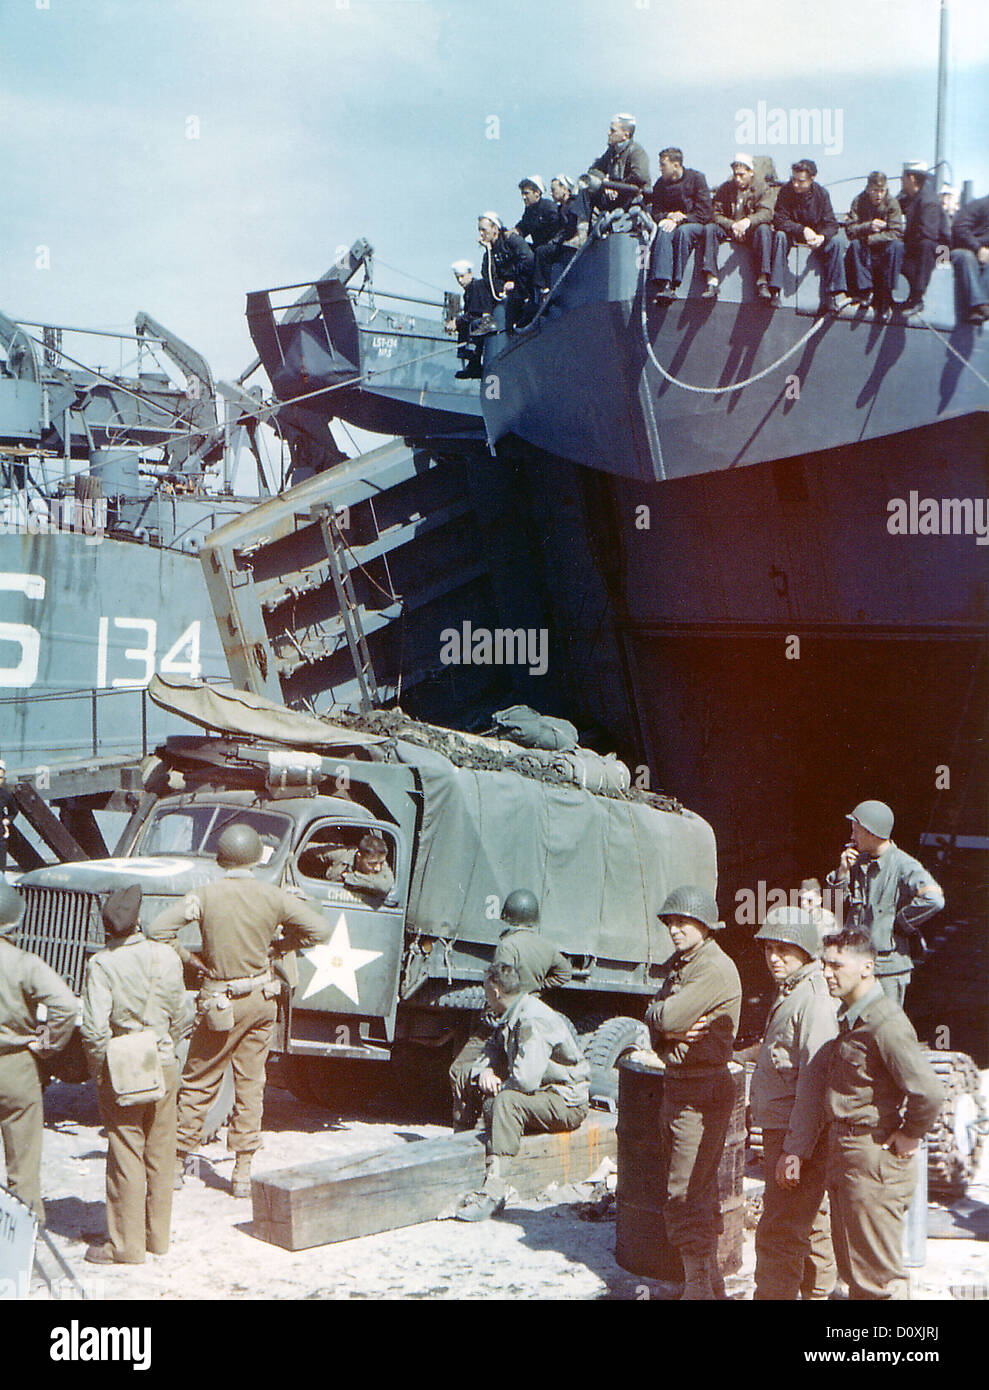 Operation, Overlord, Navy, Landing Crafts, ship, Southern England, British, soldiers, troops, invasion, France, Stock Photo